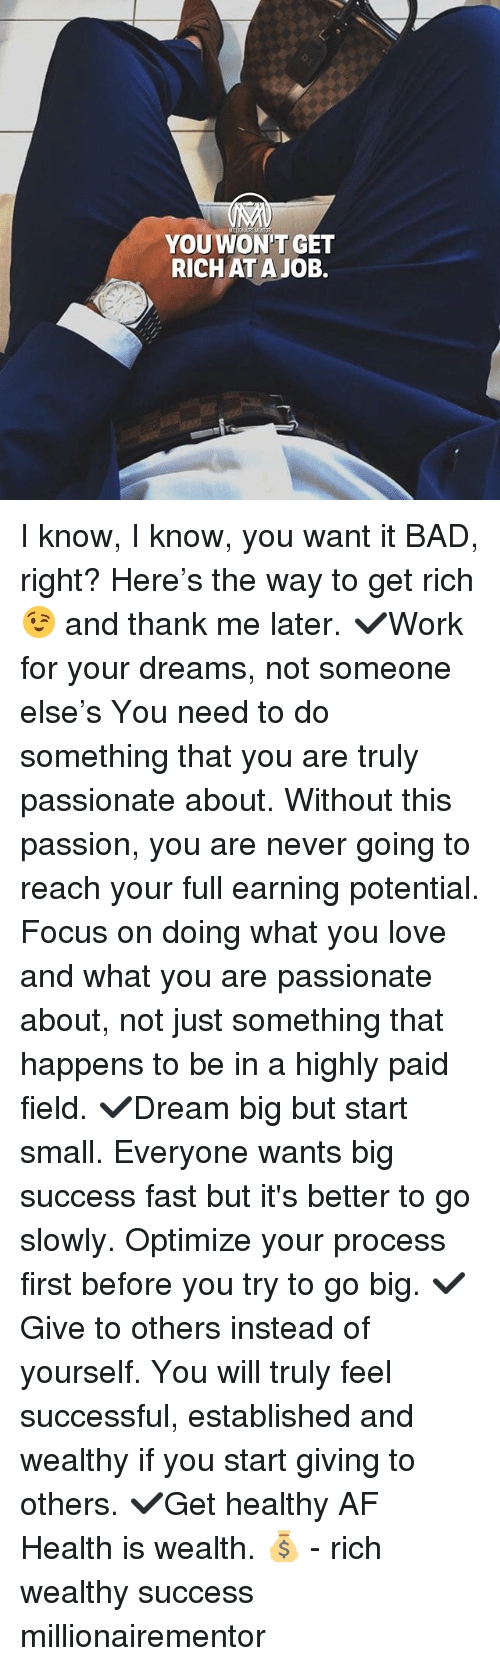 Af, Bad, and Love: YOUWON'T GET  RICHAT A JOB. I know, I know, you want it BAD, right? Here's the way to get rich 😉 and thank me later. ✔️Work for your dreams, not someone else's You need to do something that you are truly passionate about. Without this passion, you are never going to reach your full earning potential. Focus on doing what you love and what you are passionate about, not just something that happens to be in a highly paid field. ✔️Dream big but start small. Everyone wants big success fast but it's better to go slowly. Optimize your process first before you try to go big. ✔️Give to others instead of yourself. You will truly feel successful, established and wealthy if you start giving to others. ✔️Get healthy AF Health is wealth. 💰 - rich wealthy success millionairementor